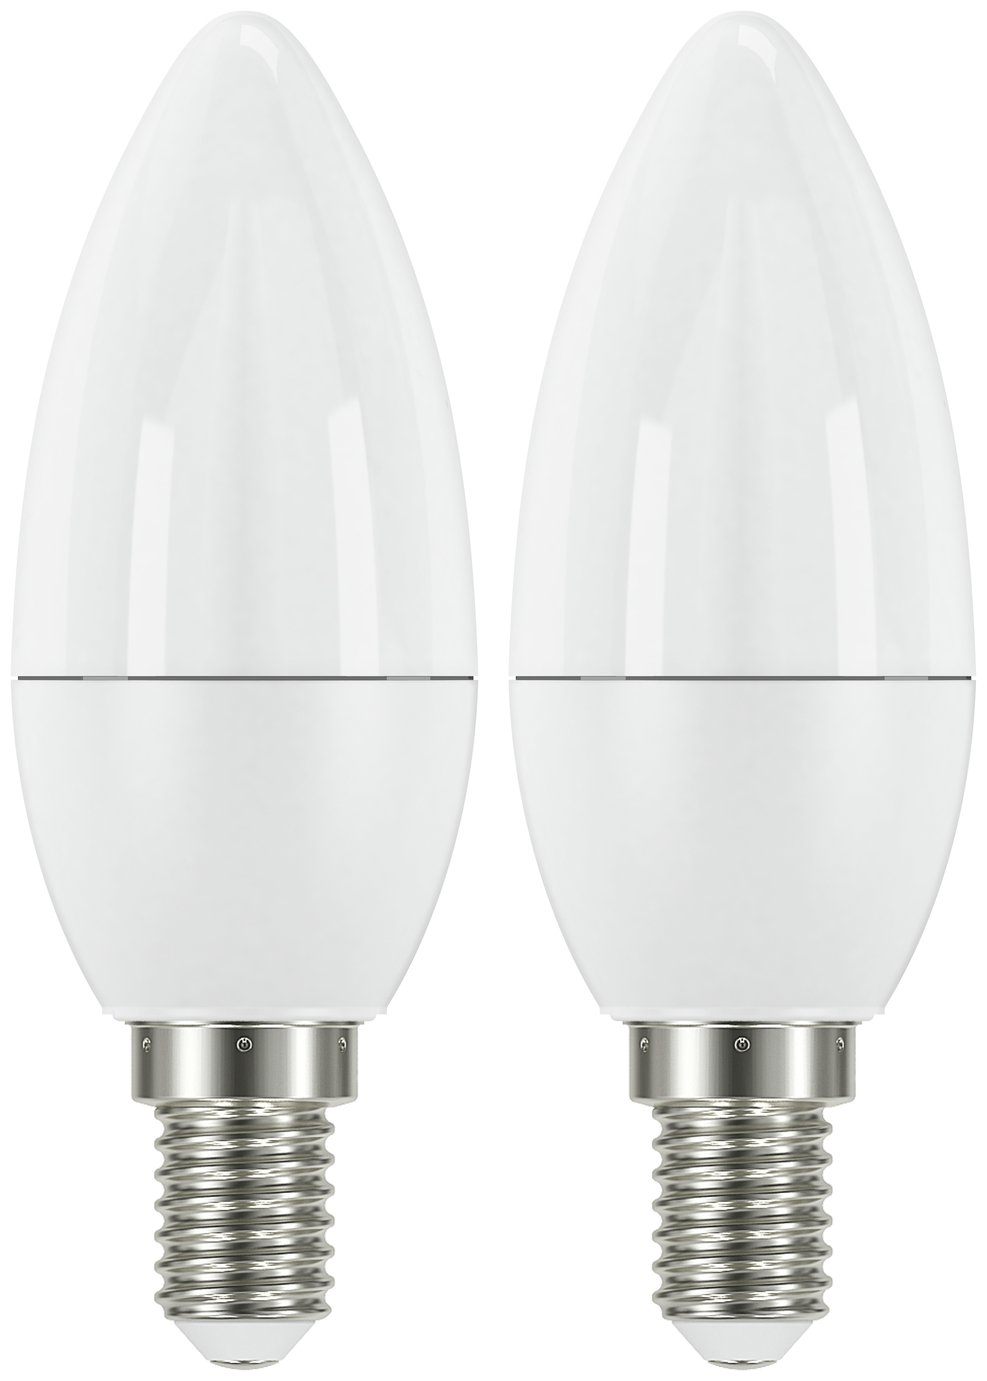 Argos Home 5W LED SES Frosted Candle Light Bulb - 2 Pack